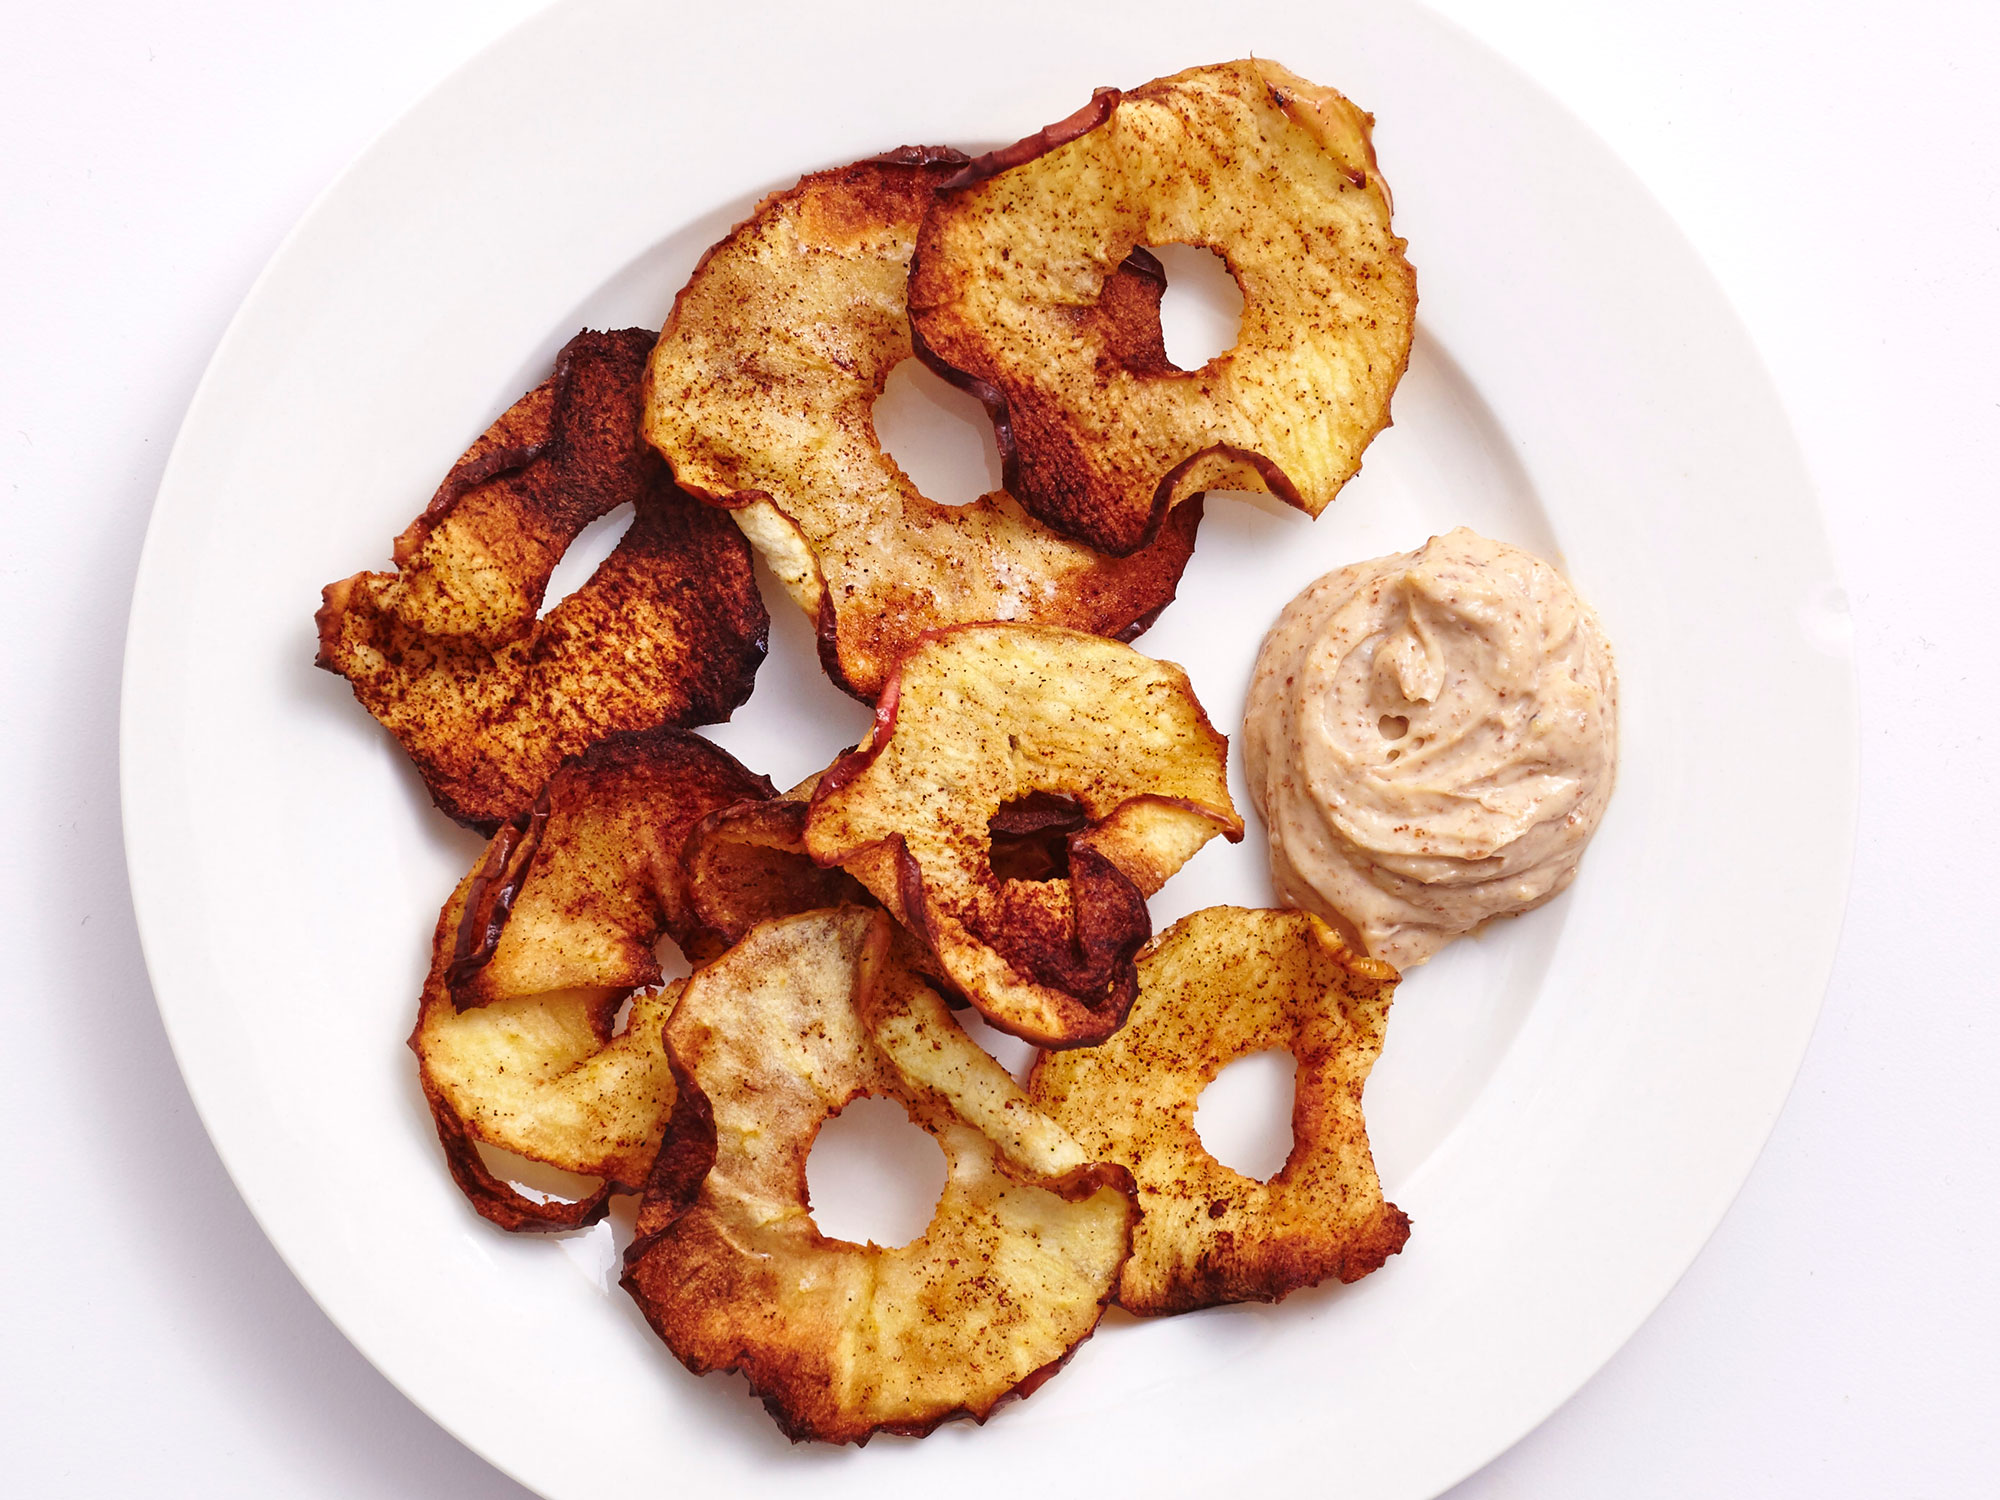 Air-Fried Cinnamon Apple Chips With Almond Yogurt Dip